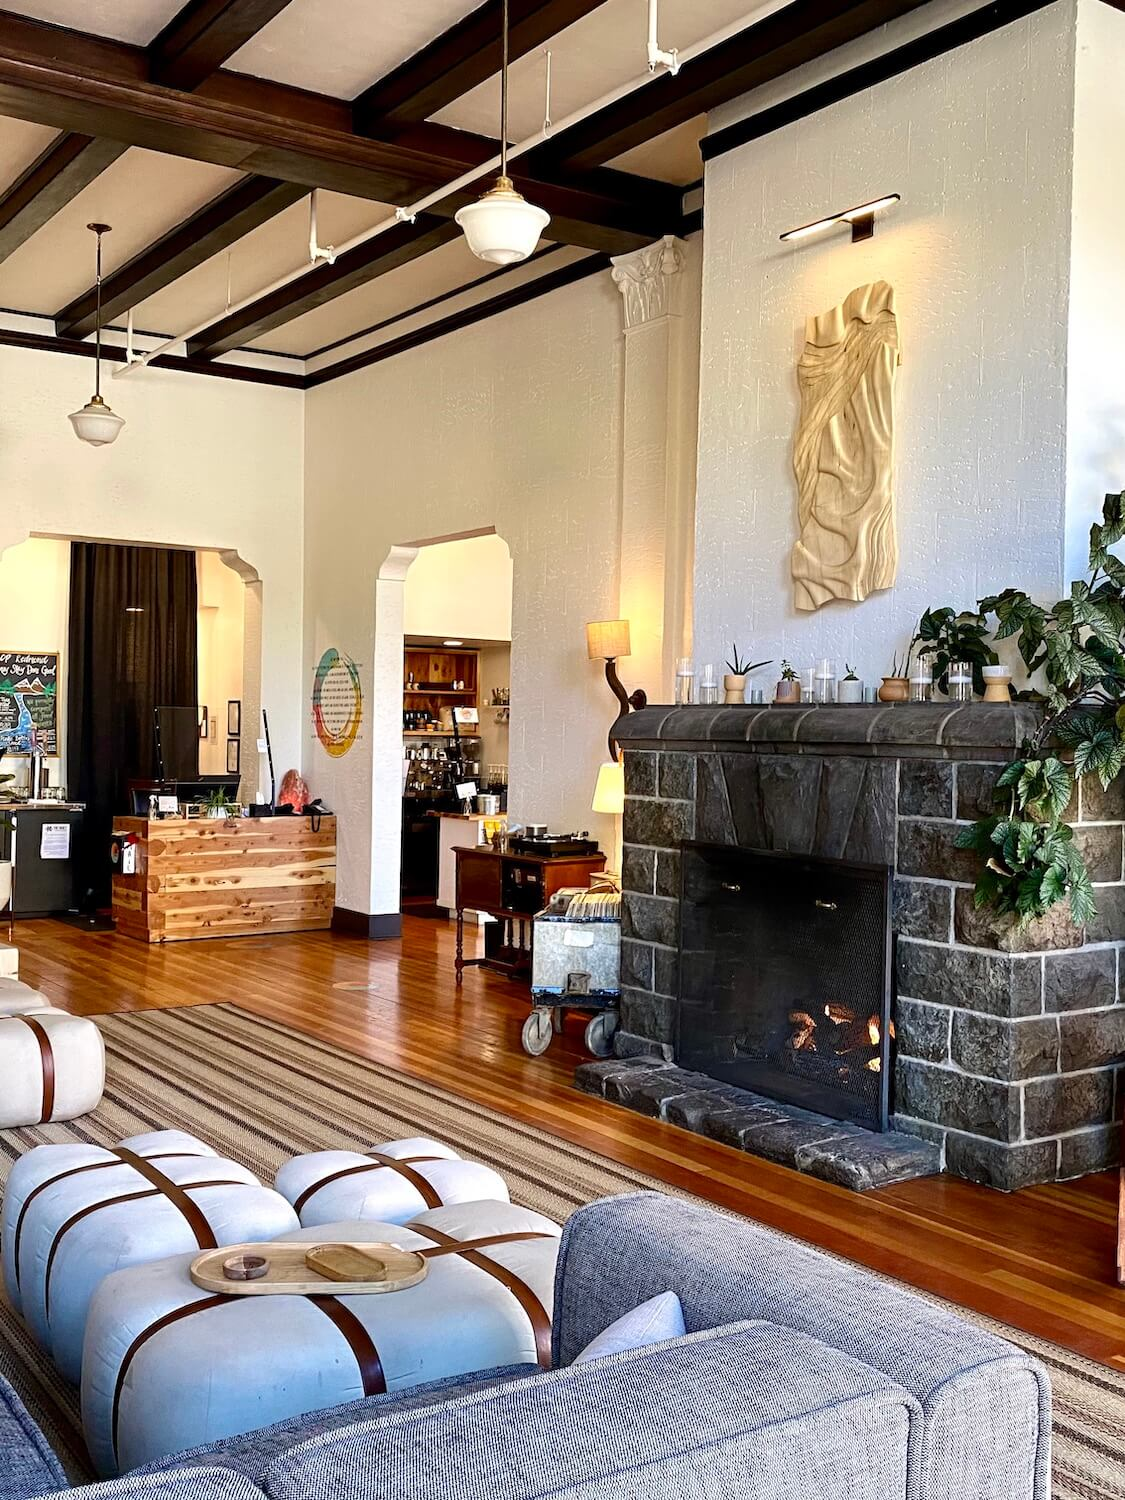 The lobby of the SCP Hotel Redmond combines historic features with hip furnishings amongst a large stone fireplace and comfy overstuffed couches.  This hotel makes for a great place to stay while on a weekend getaway to Central Oregon.